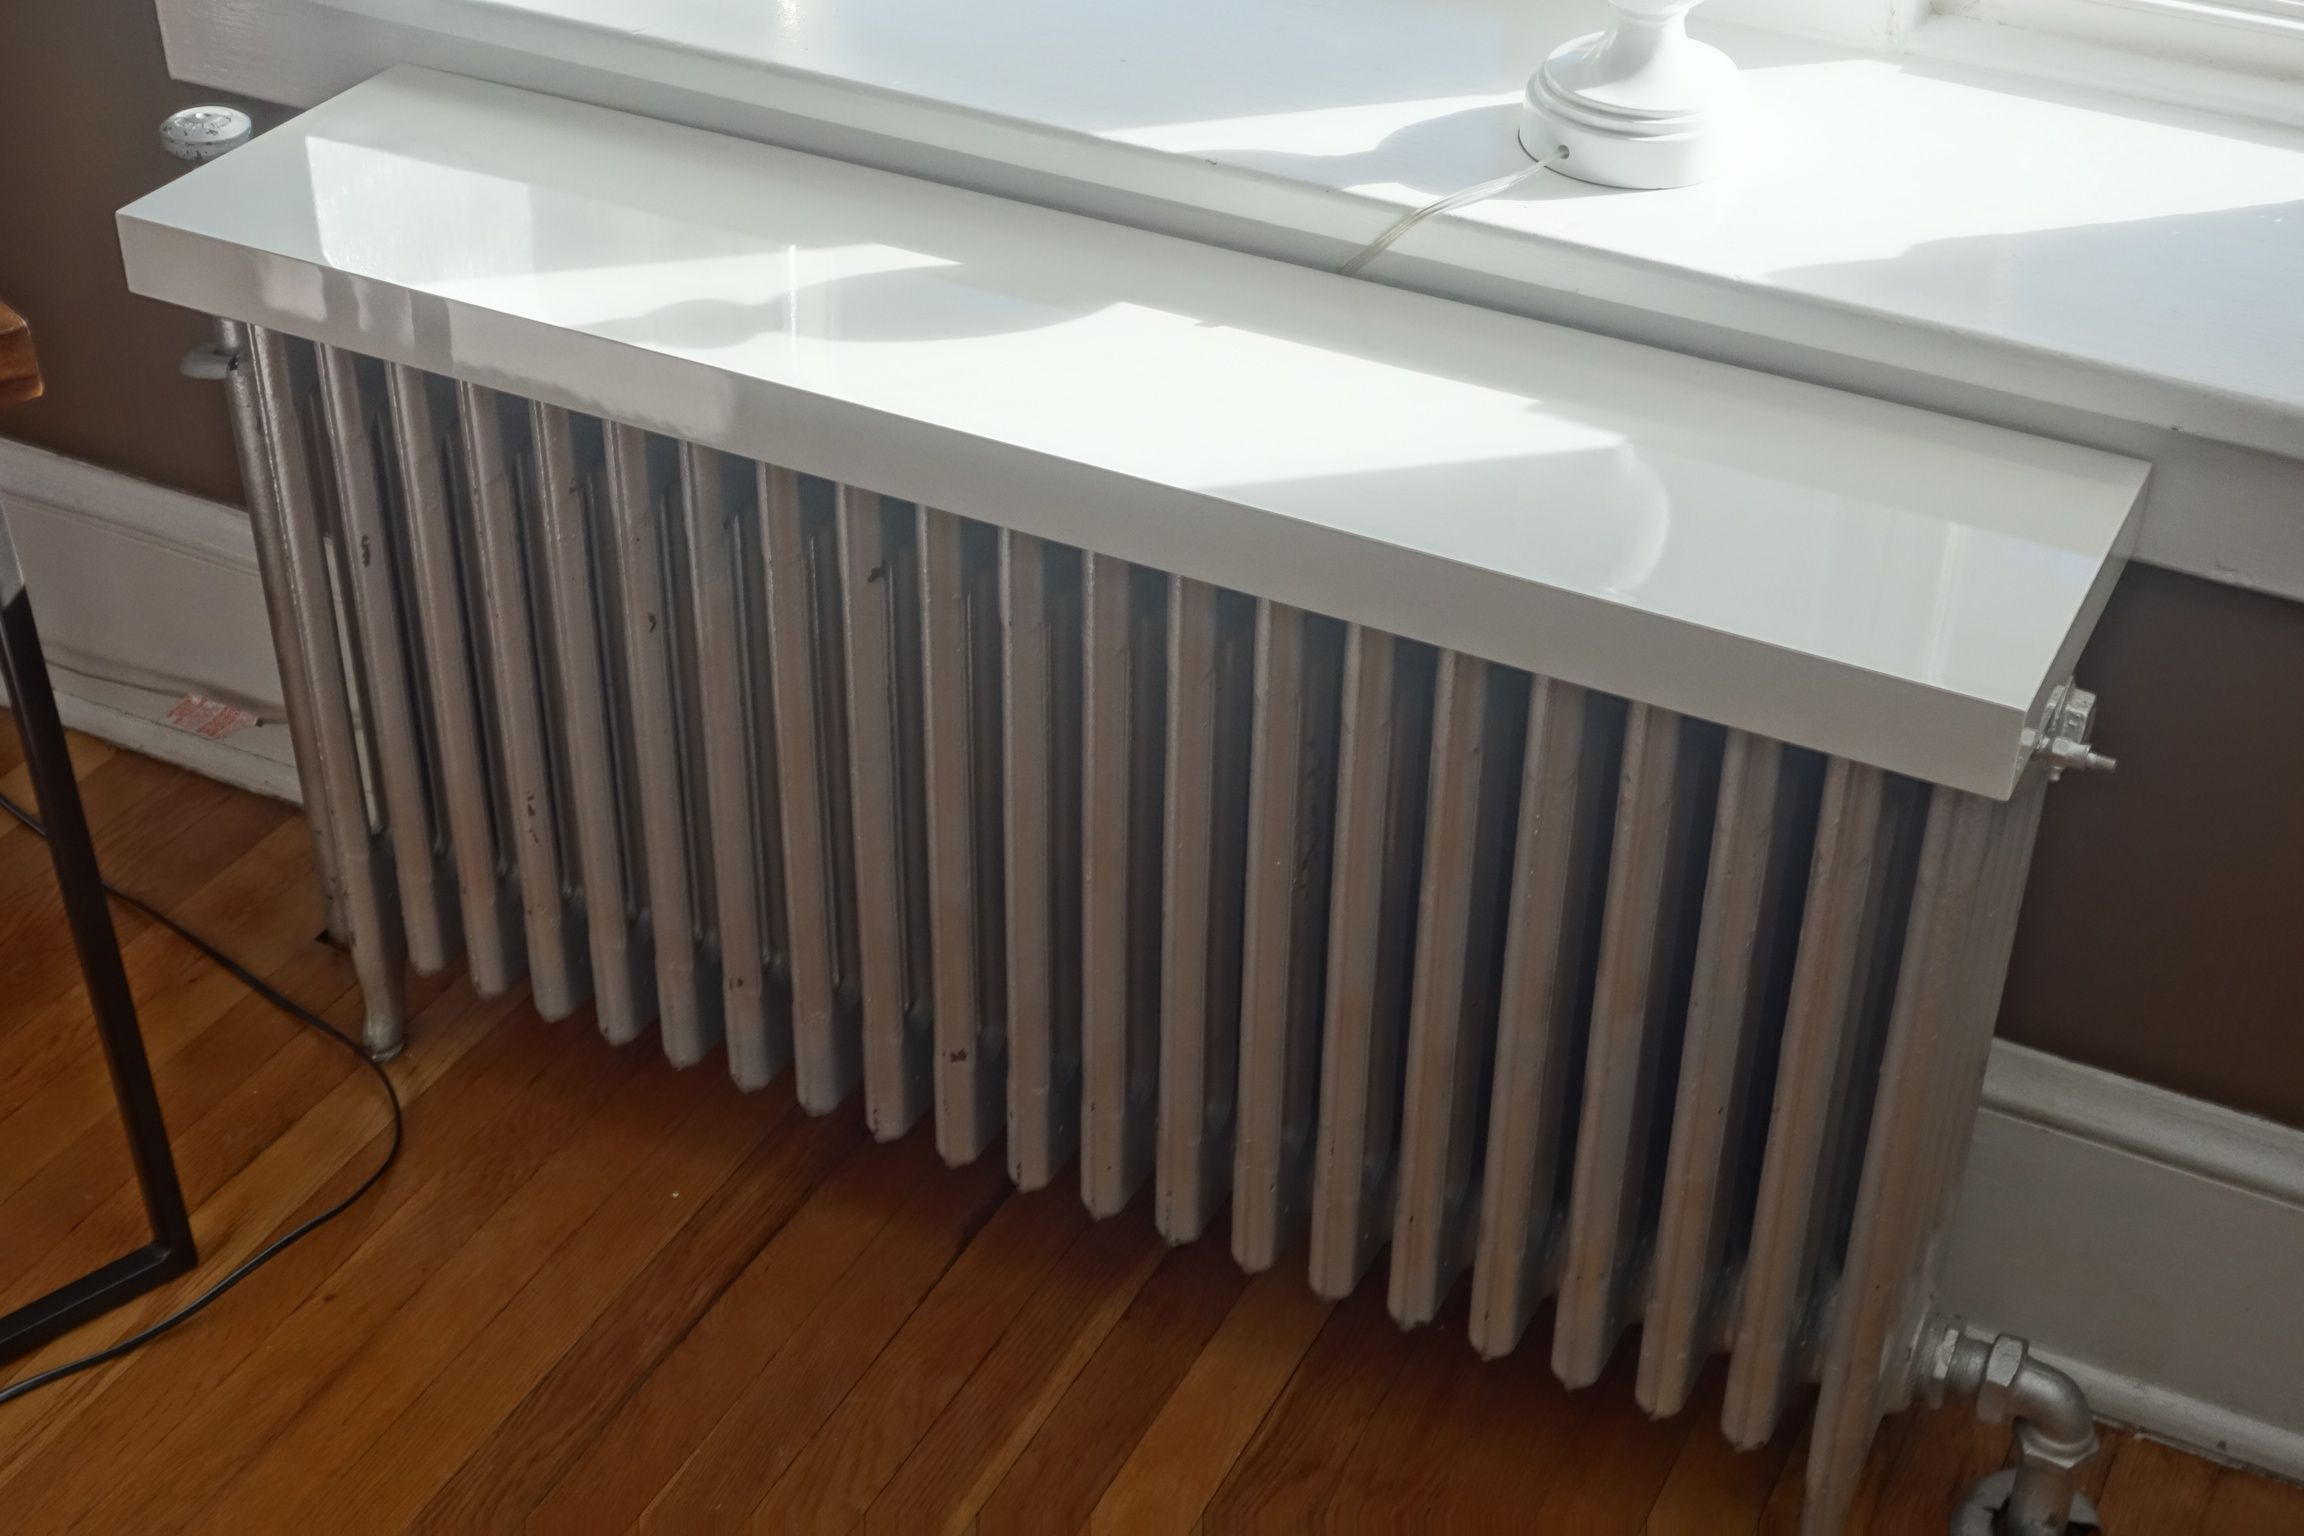 Check Out This Idea To Turn Your Old Radiator Into